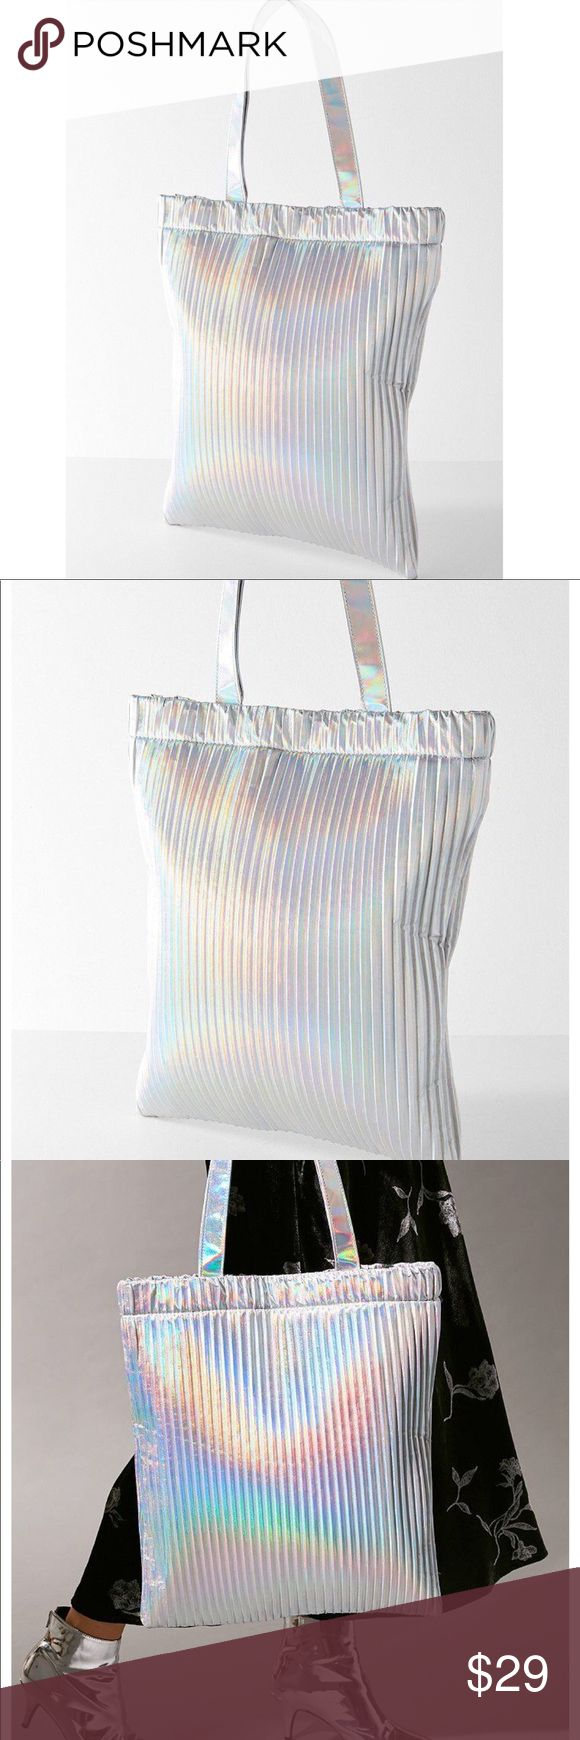 URBAN OUTFITTERS PLEATED TOTE BAG IN METALLIC URBAN OUTFITTERS PLEATED TOTE BAG IN METALLIC when that minimalist lifestyle just isn't cutting it, pile all your necessities into this seriously luxe, pleated tote bag. With its bright metallic colors! Perfect for festivals, raves, etc. Roomy tote in a luxe velvet with an open silhouette and inner lining. Two pockets inside one zipper to keep belongs safe, complete with sturdy, thick carrying handles. Content + Care - PVC, polyester - Wipe clean…